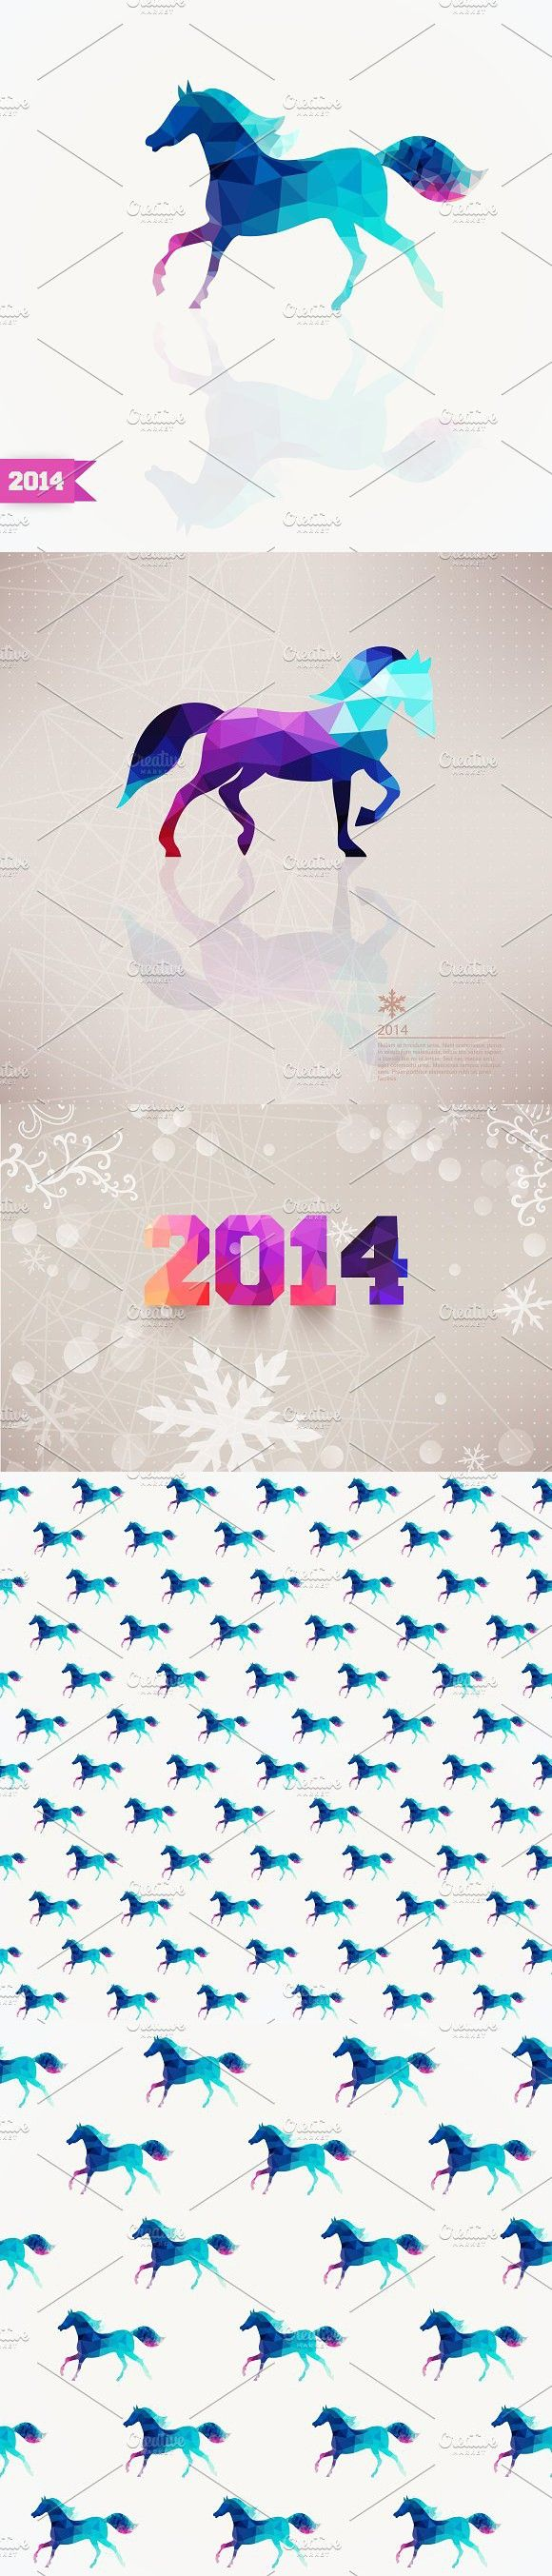 Year of the Horse 2014. Patterns. $5.00